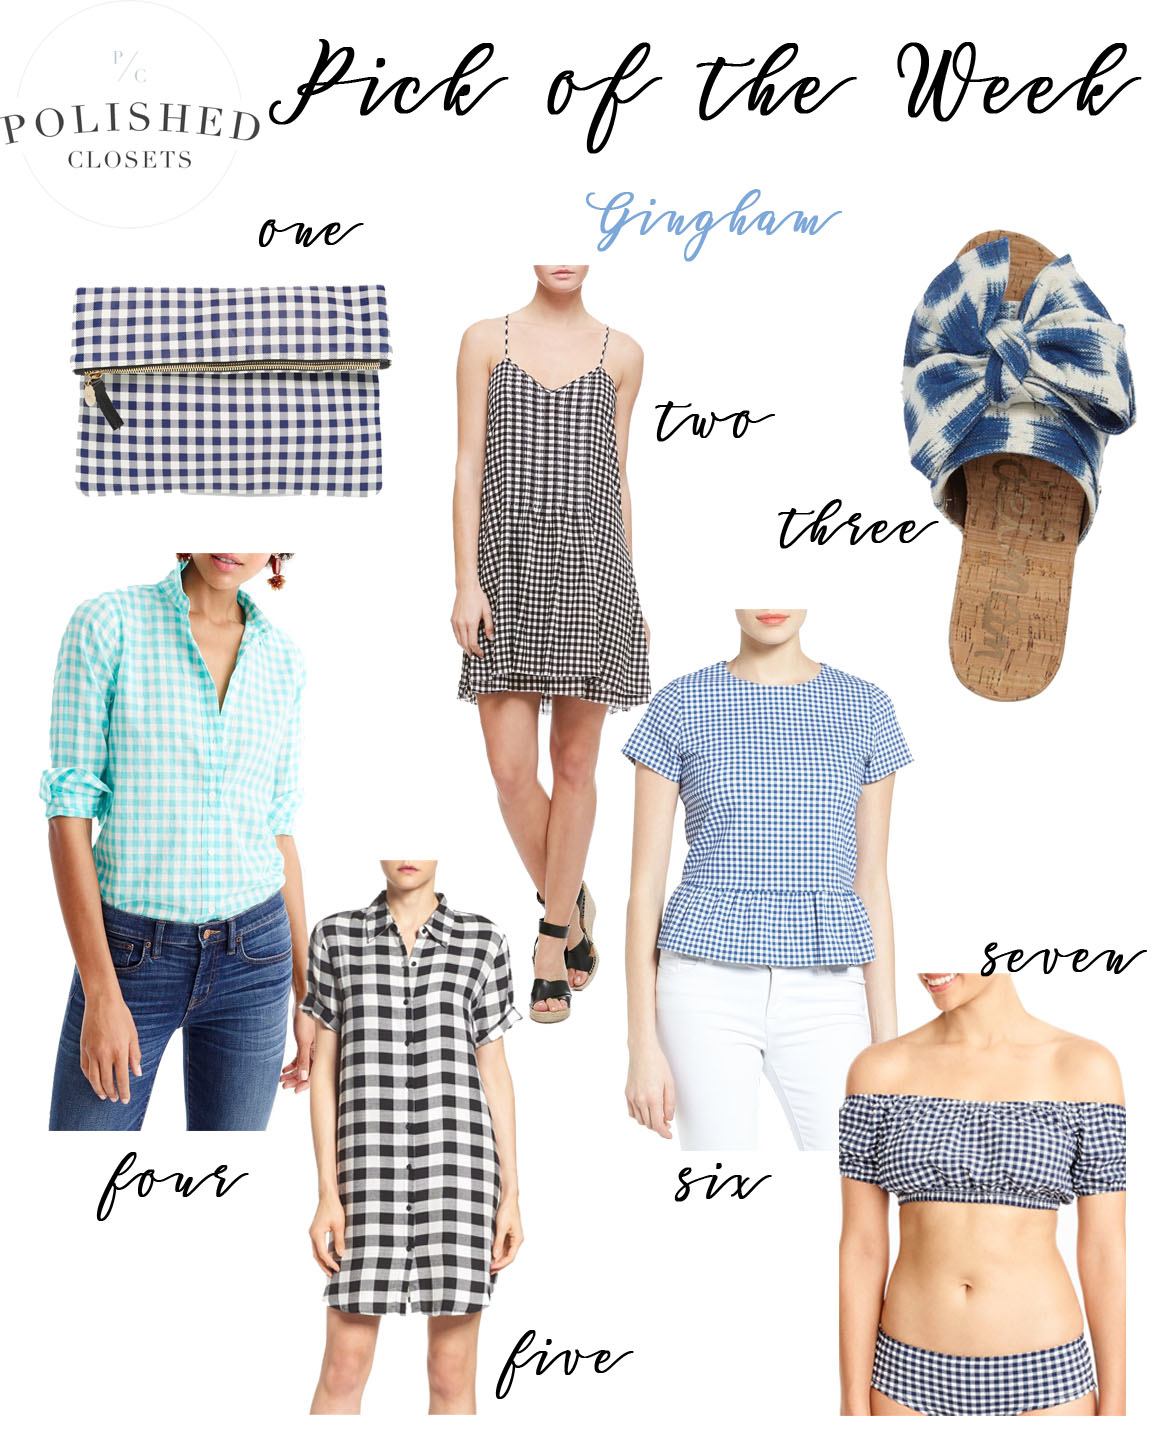 gingham in addition - photo #20